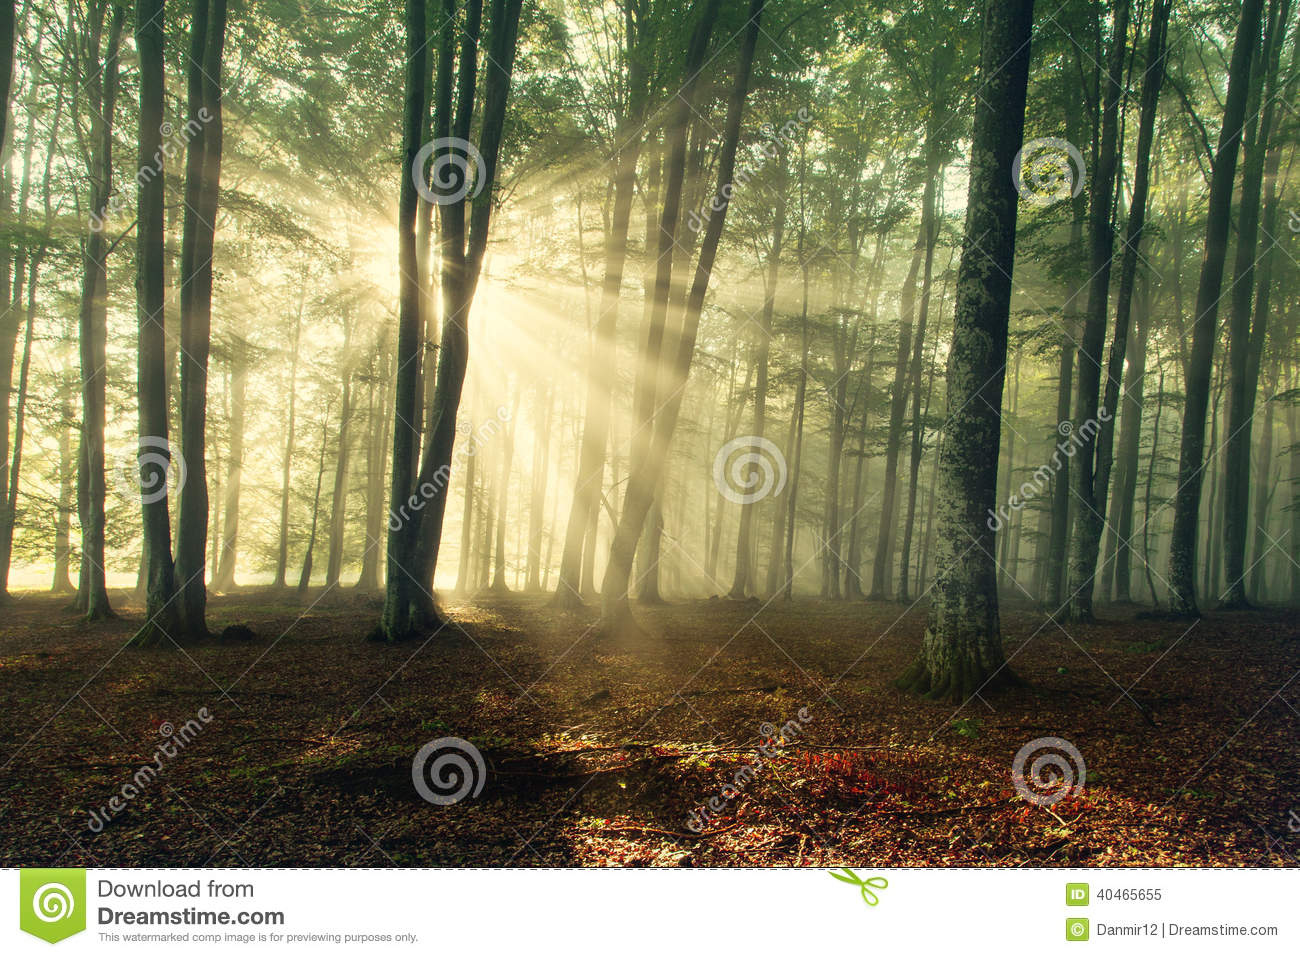 Autumn forest trees. nature green wood sunlight backgrounds.